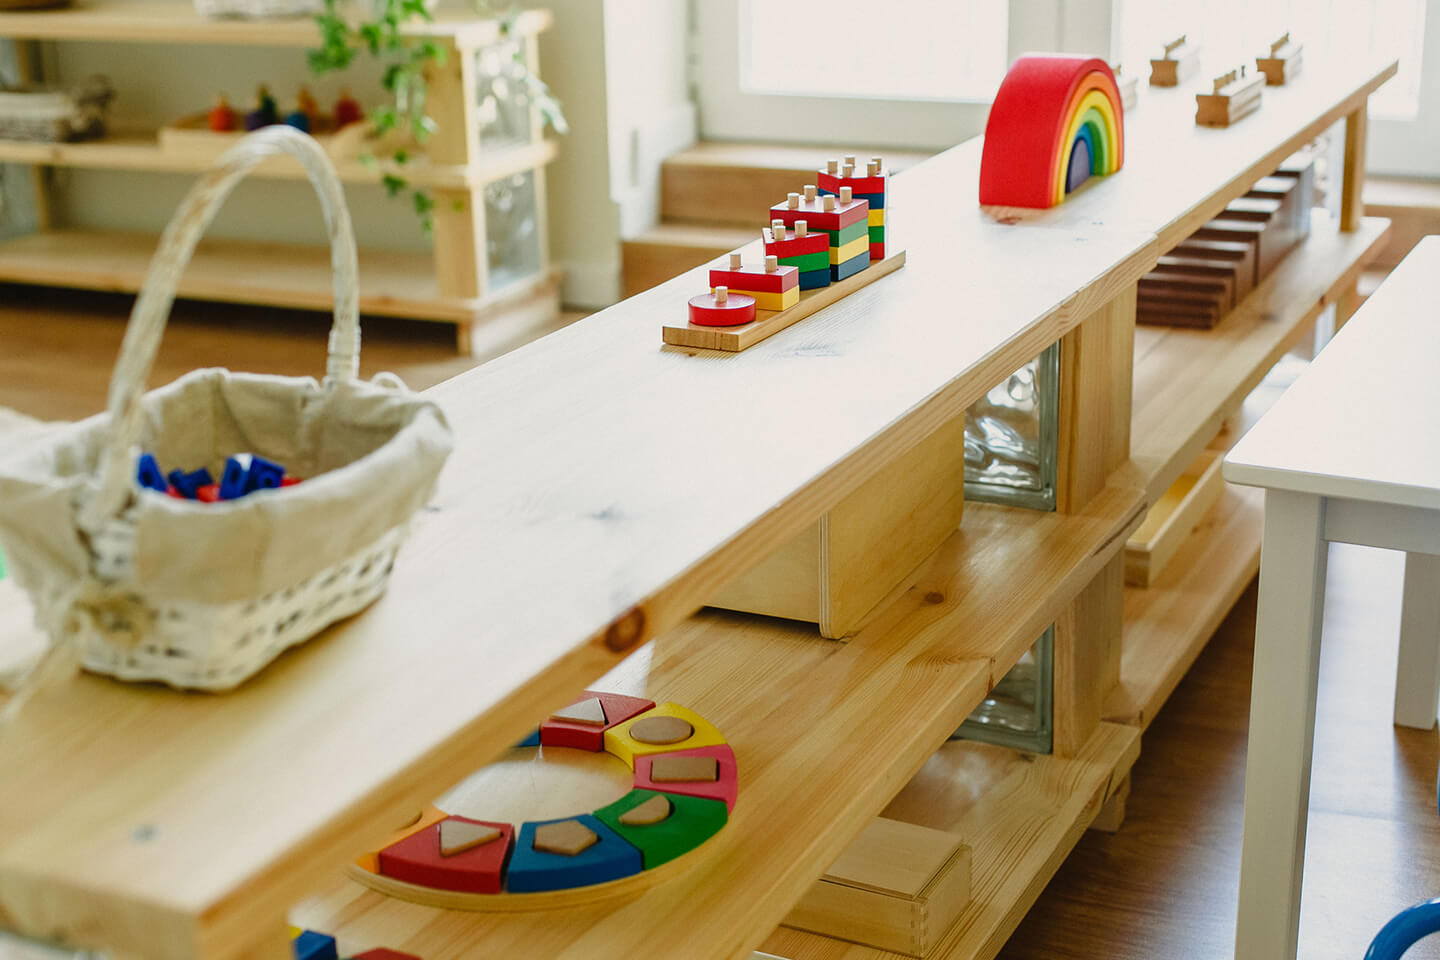 A wooden shelf with toys on it at a childcare center in Sydney's Inner West